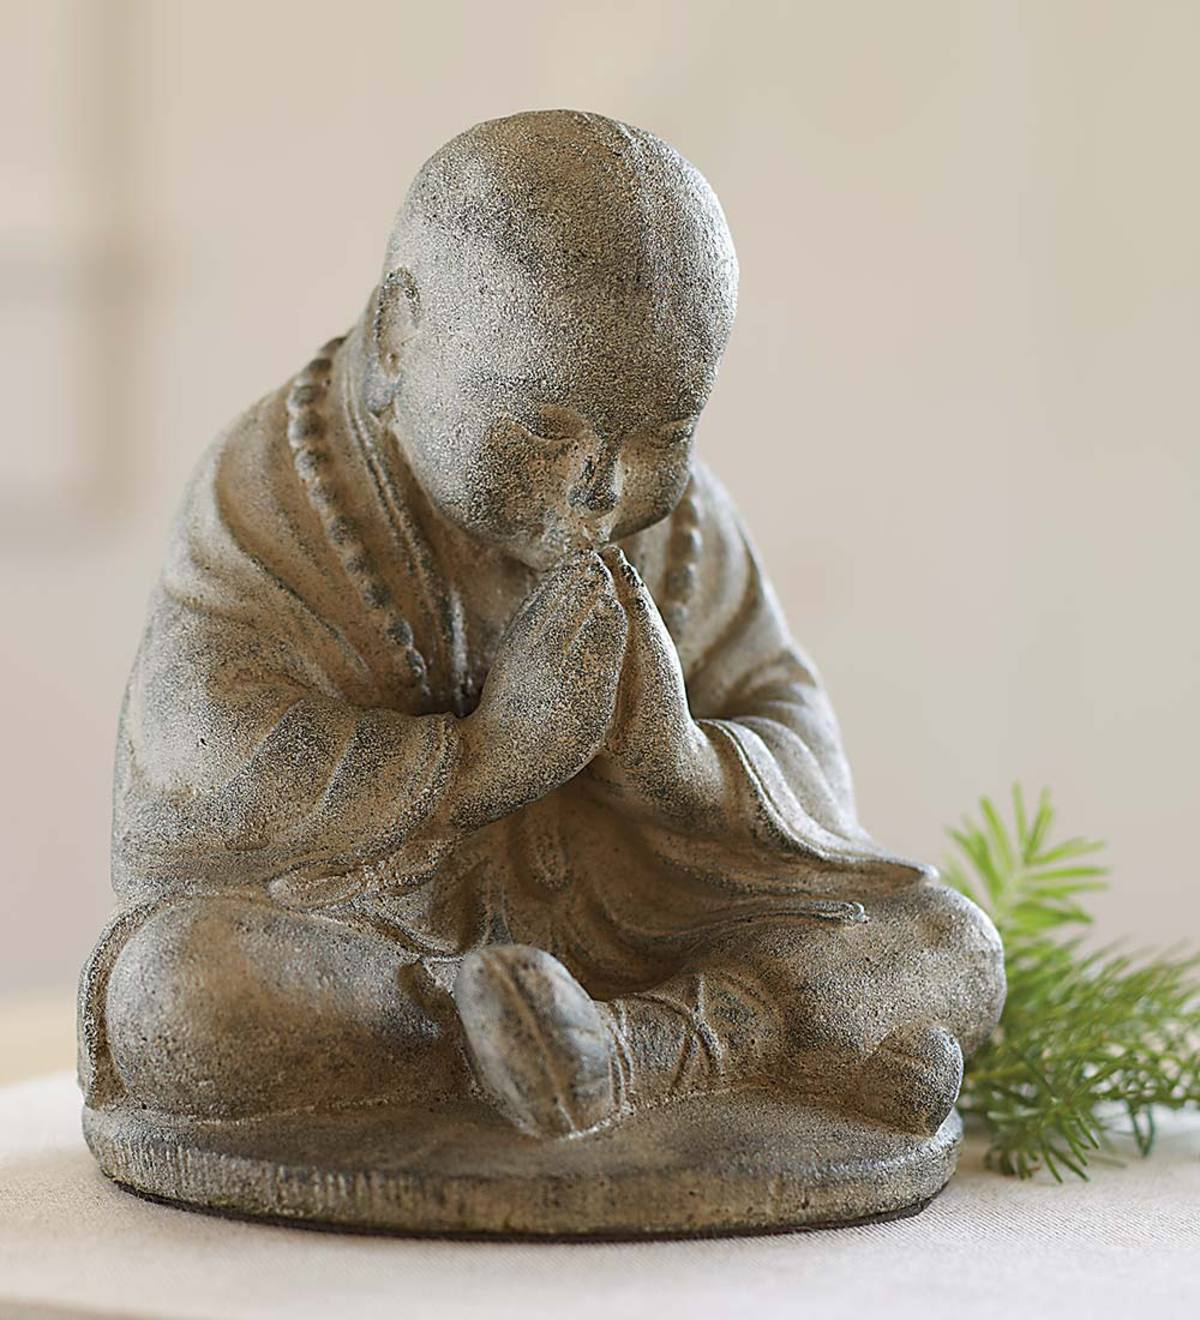 Namaste Monk Statue   Shop New   Hidden and Searchable   Wind and ...